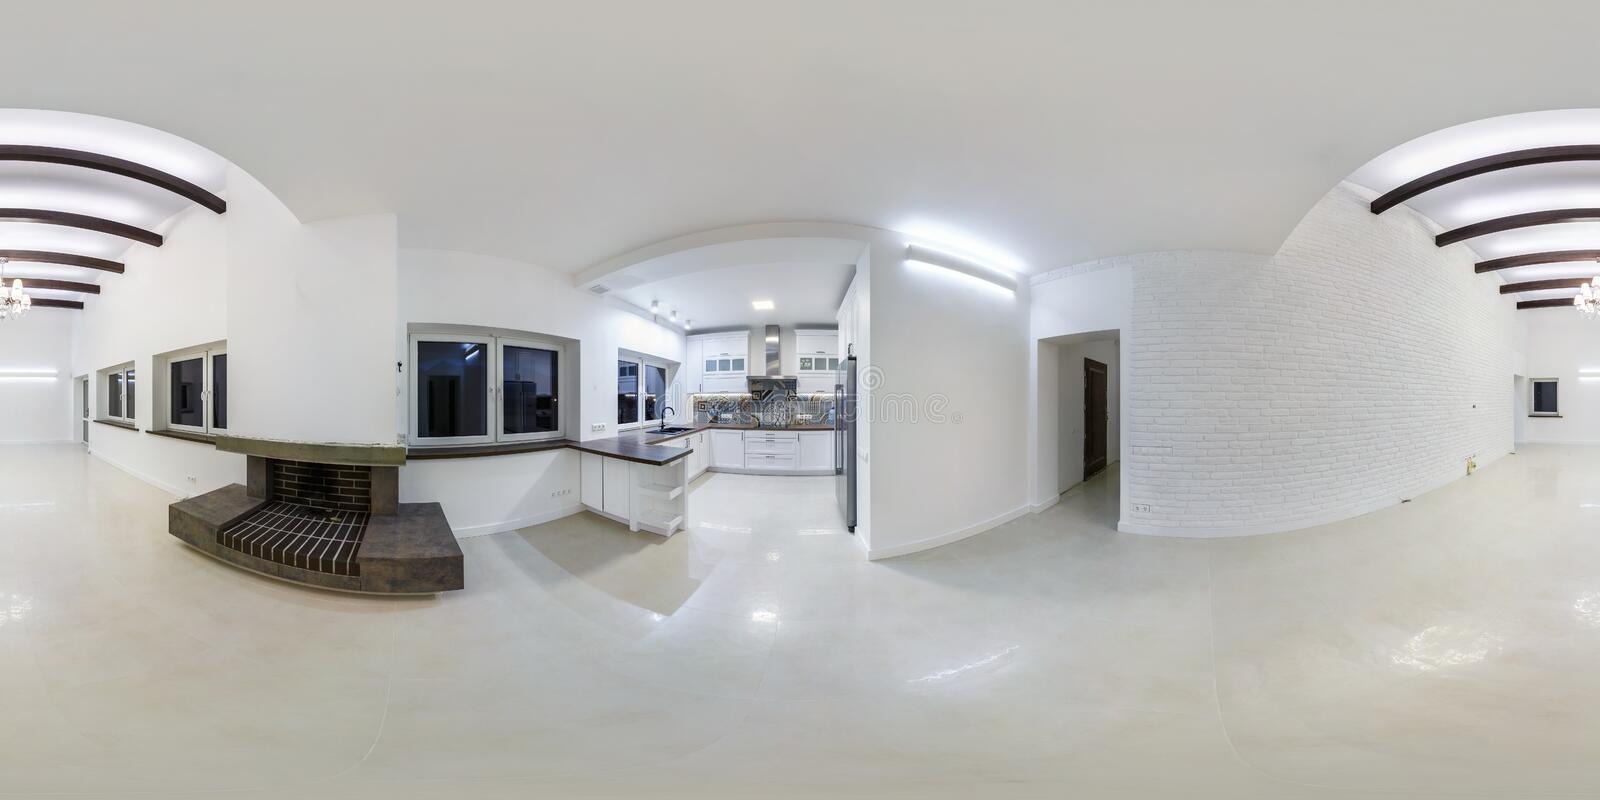 GRODNO, BELARUS - MAY, 2019: Full spherical seamless hdri panorama 360 degrees  view in white interior of guest room in homestead. Apartment with fireplace in royalty free stock images